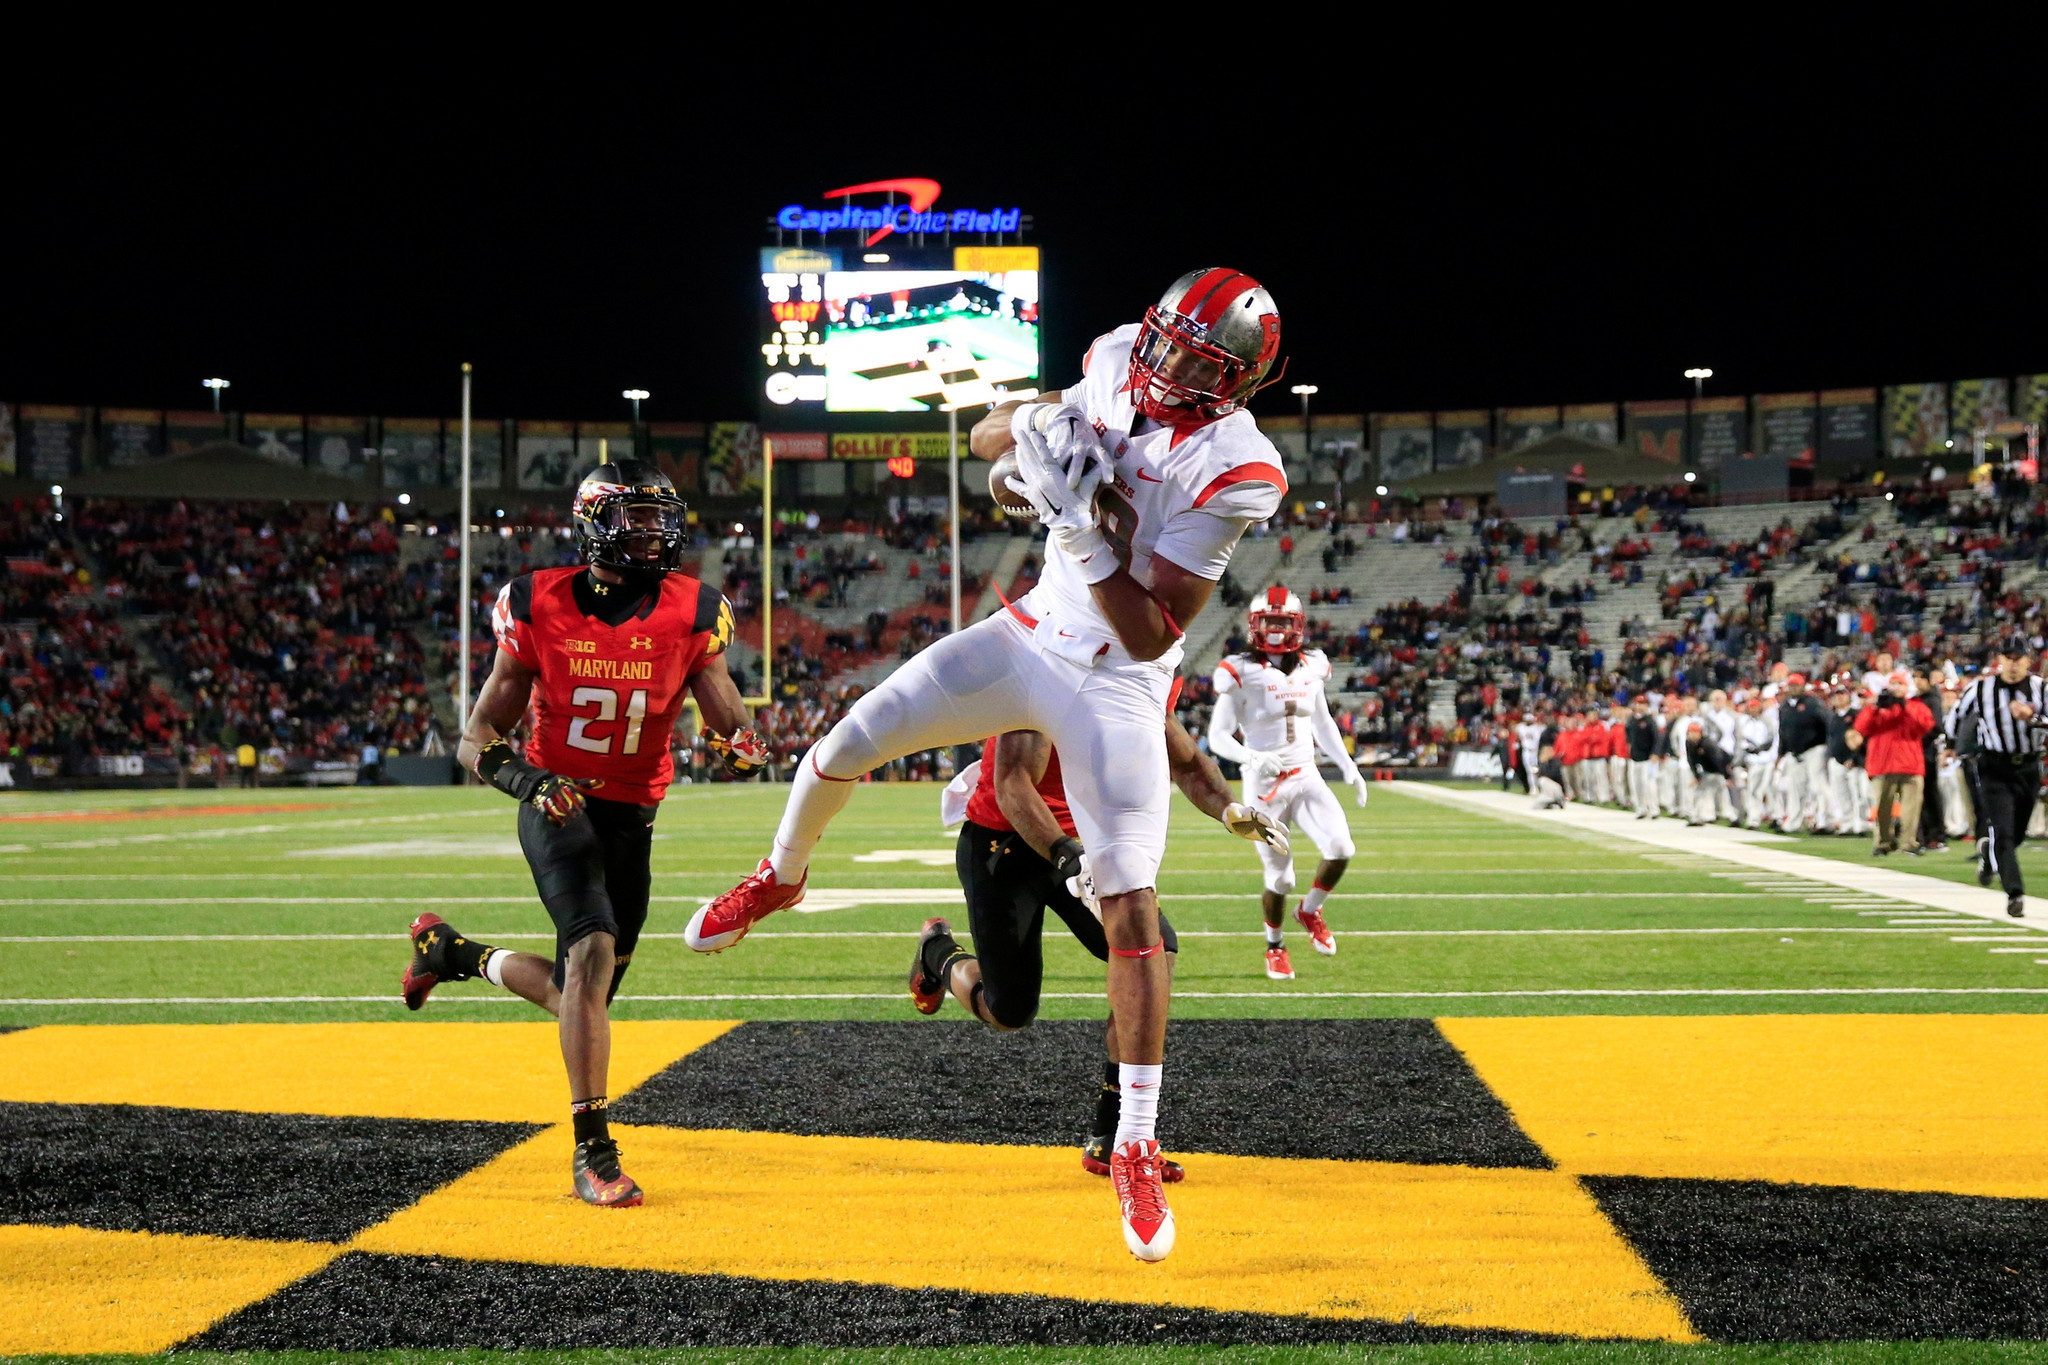 Os-college-football-countdown-rutgers-0517-20160517